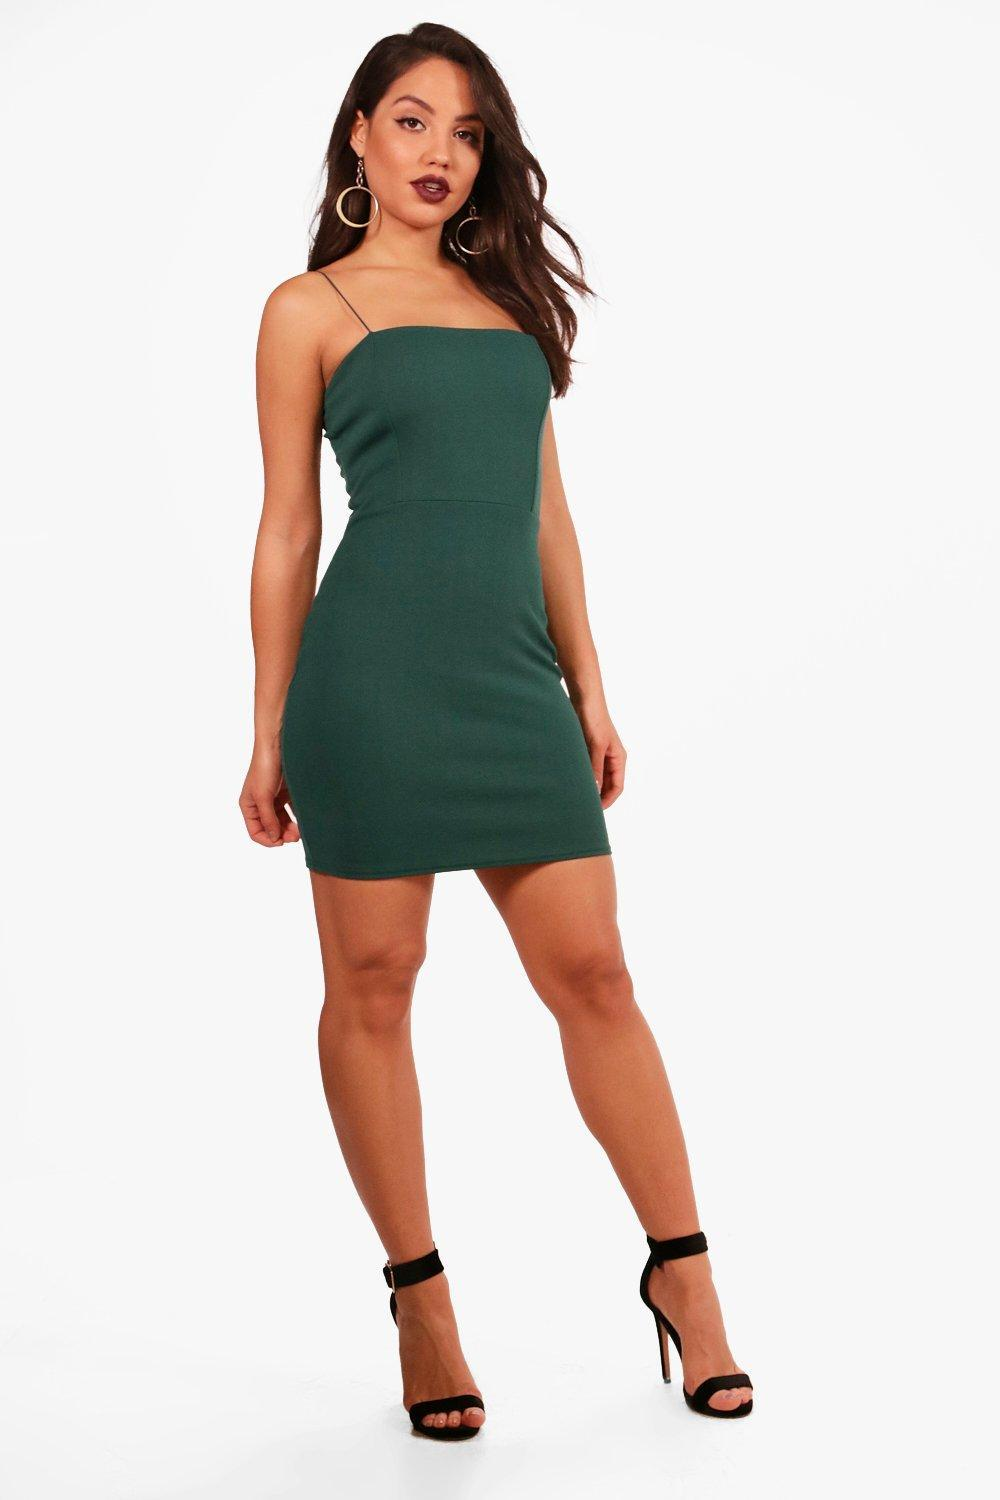 69bed3f76ae Boohoo Crepe Square Neck Bodycon Dress in Green - Lyst